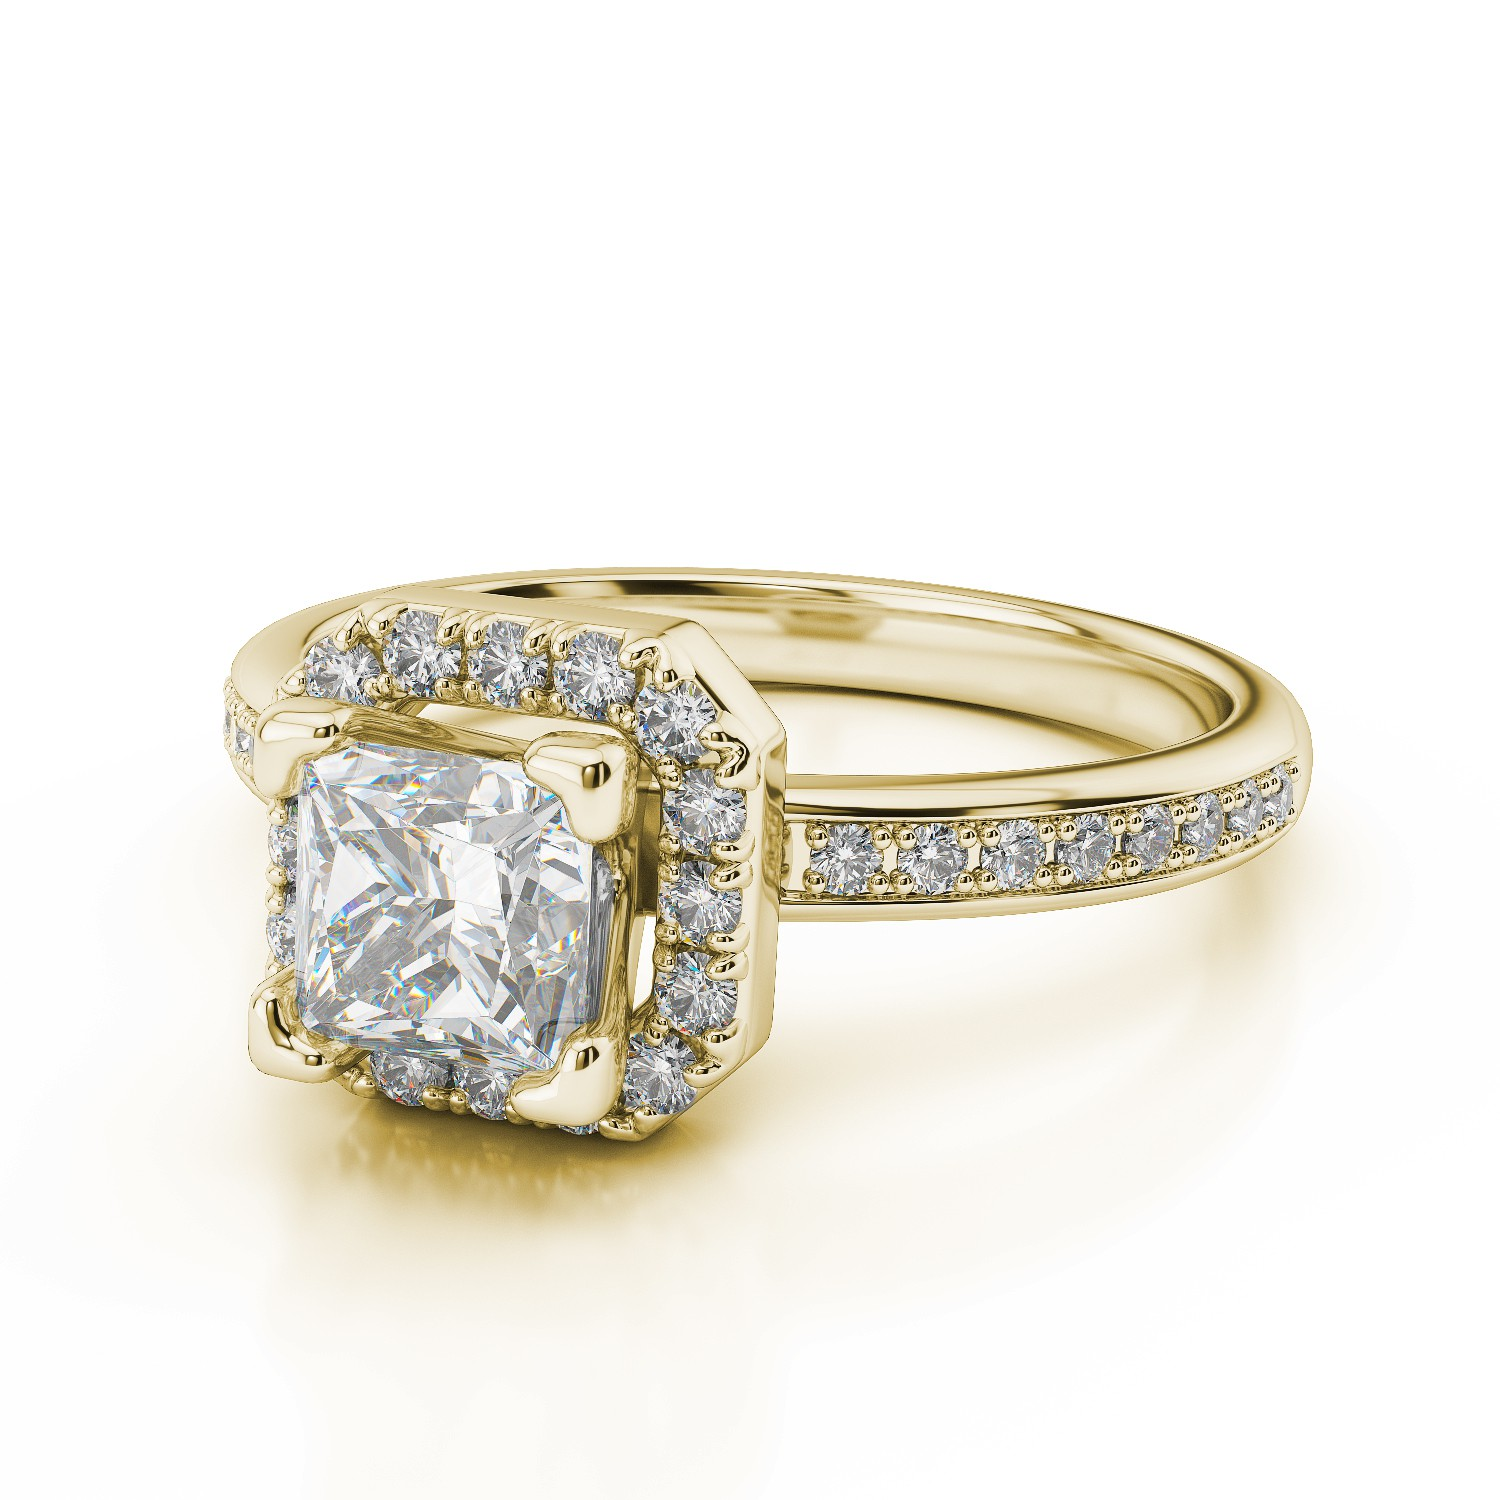 18ct Yellow Gold with diamonds